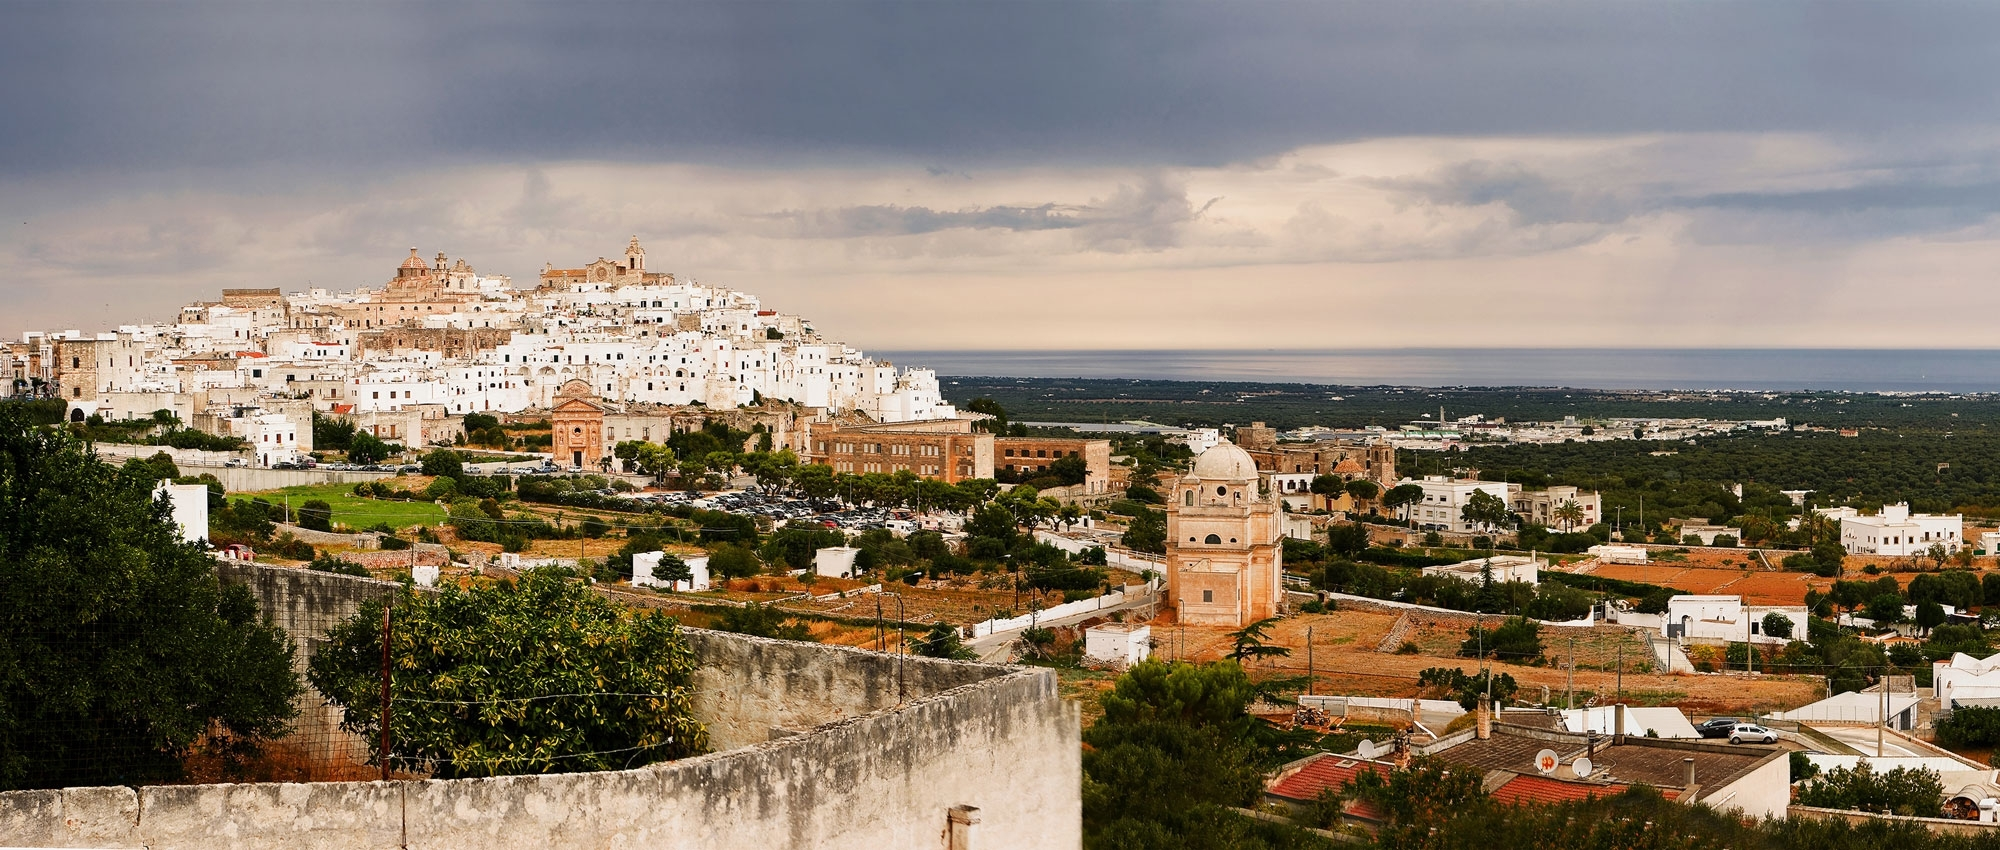 Hire a luxury car in Puglia